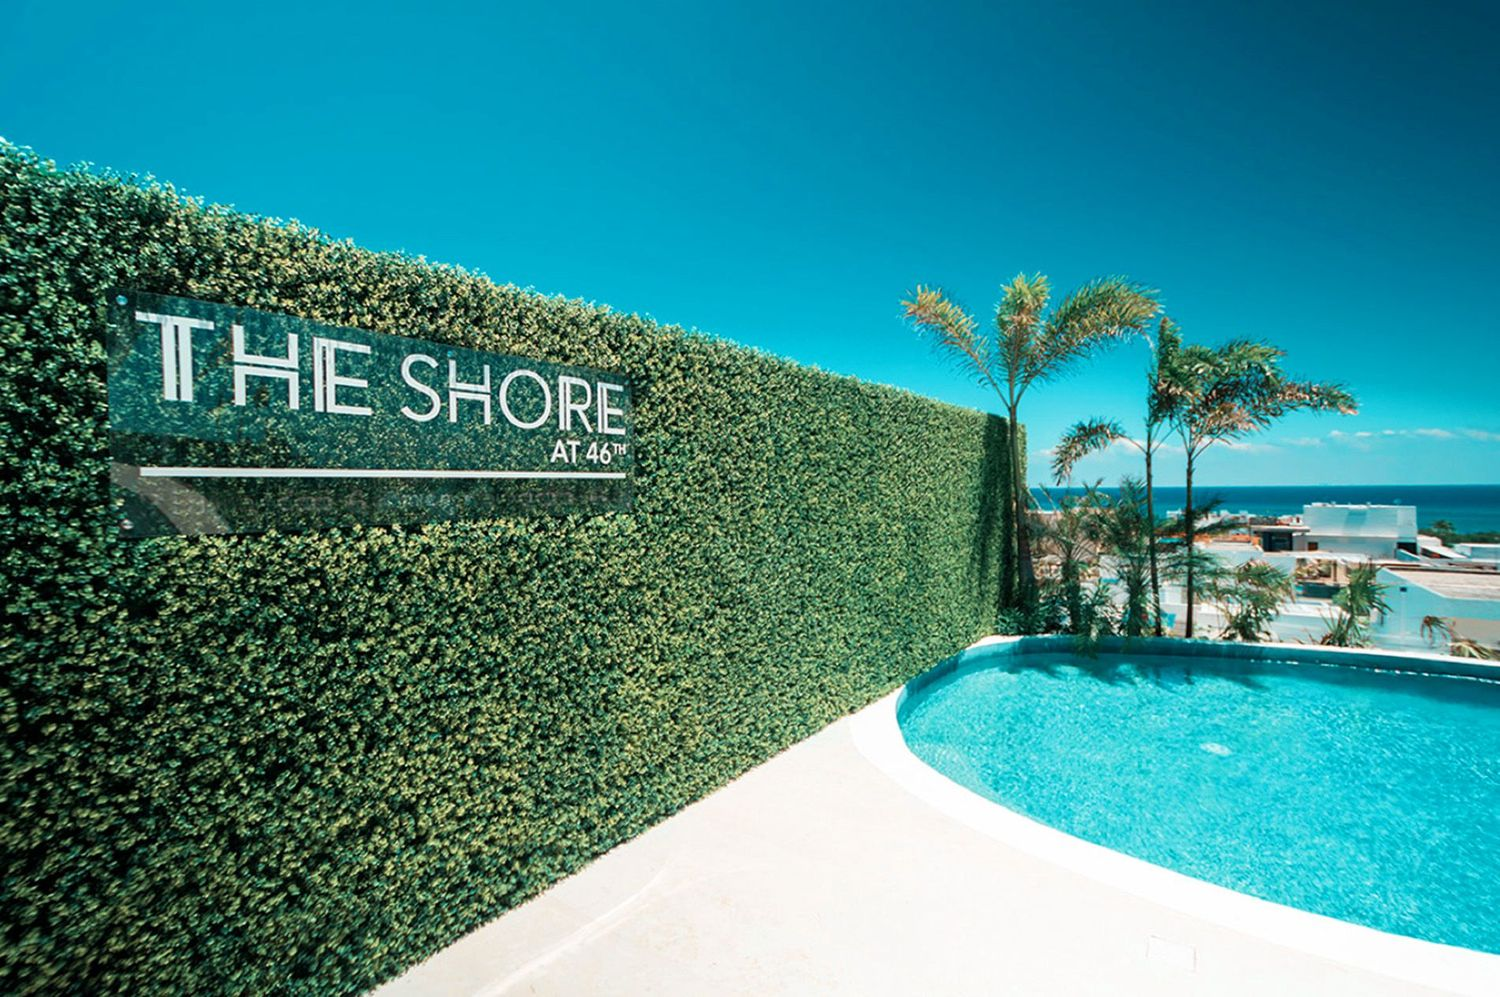 The Shore At 46th Hotel